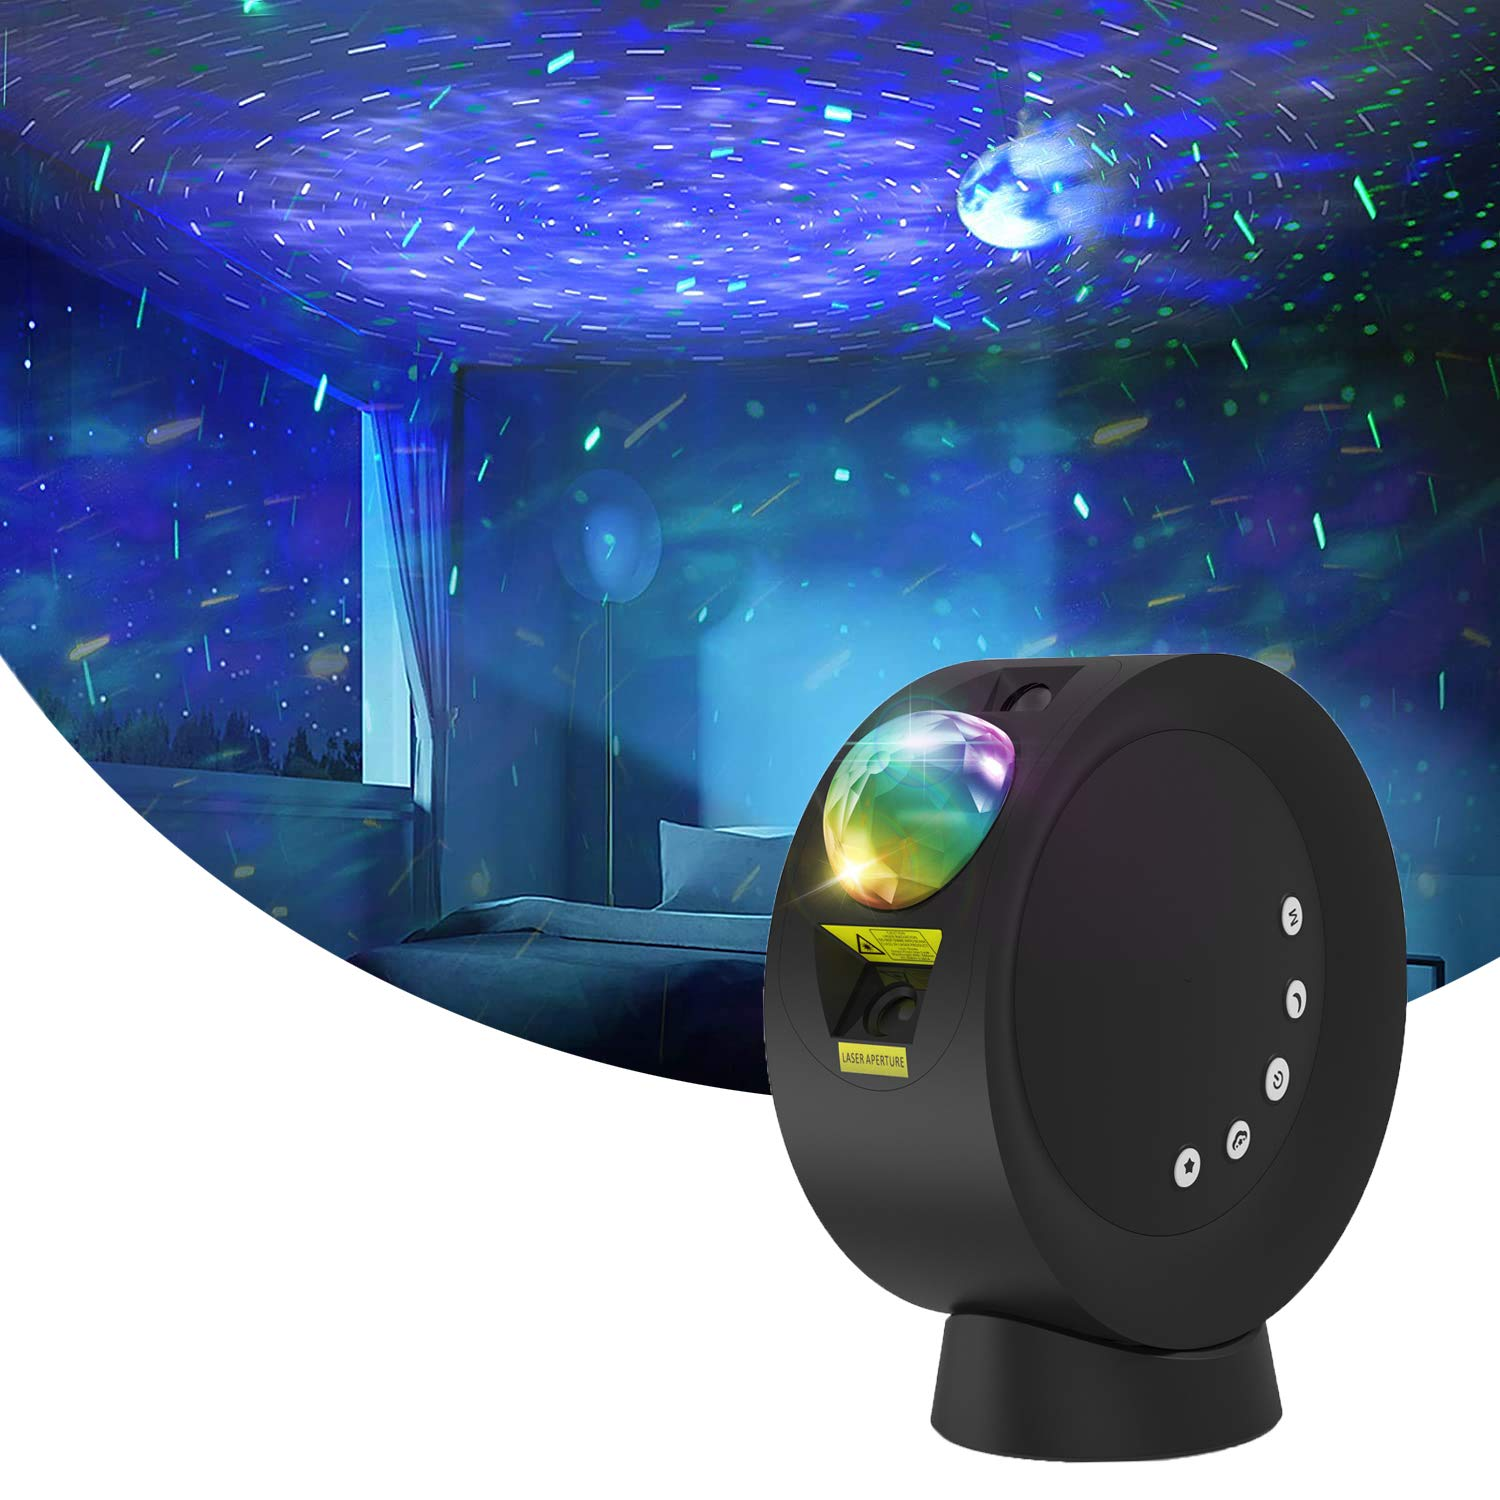 Star Projector Night Light, Winique Nebula Moon Night Light w/Base & Remote Control, 4000mAh Battery Operated LED Galaxy Projector Lamp, 9 Lighting Modes for Bedroom, Party, Home Decor, Black